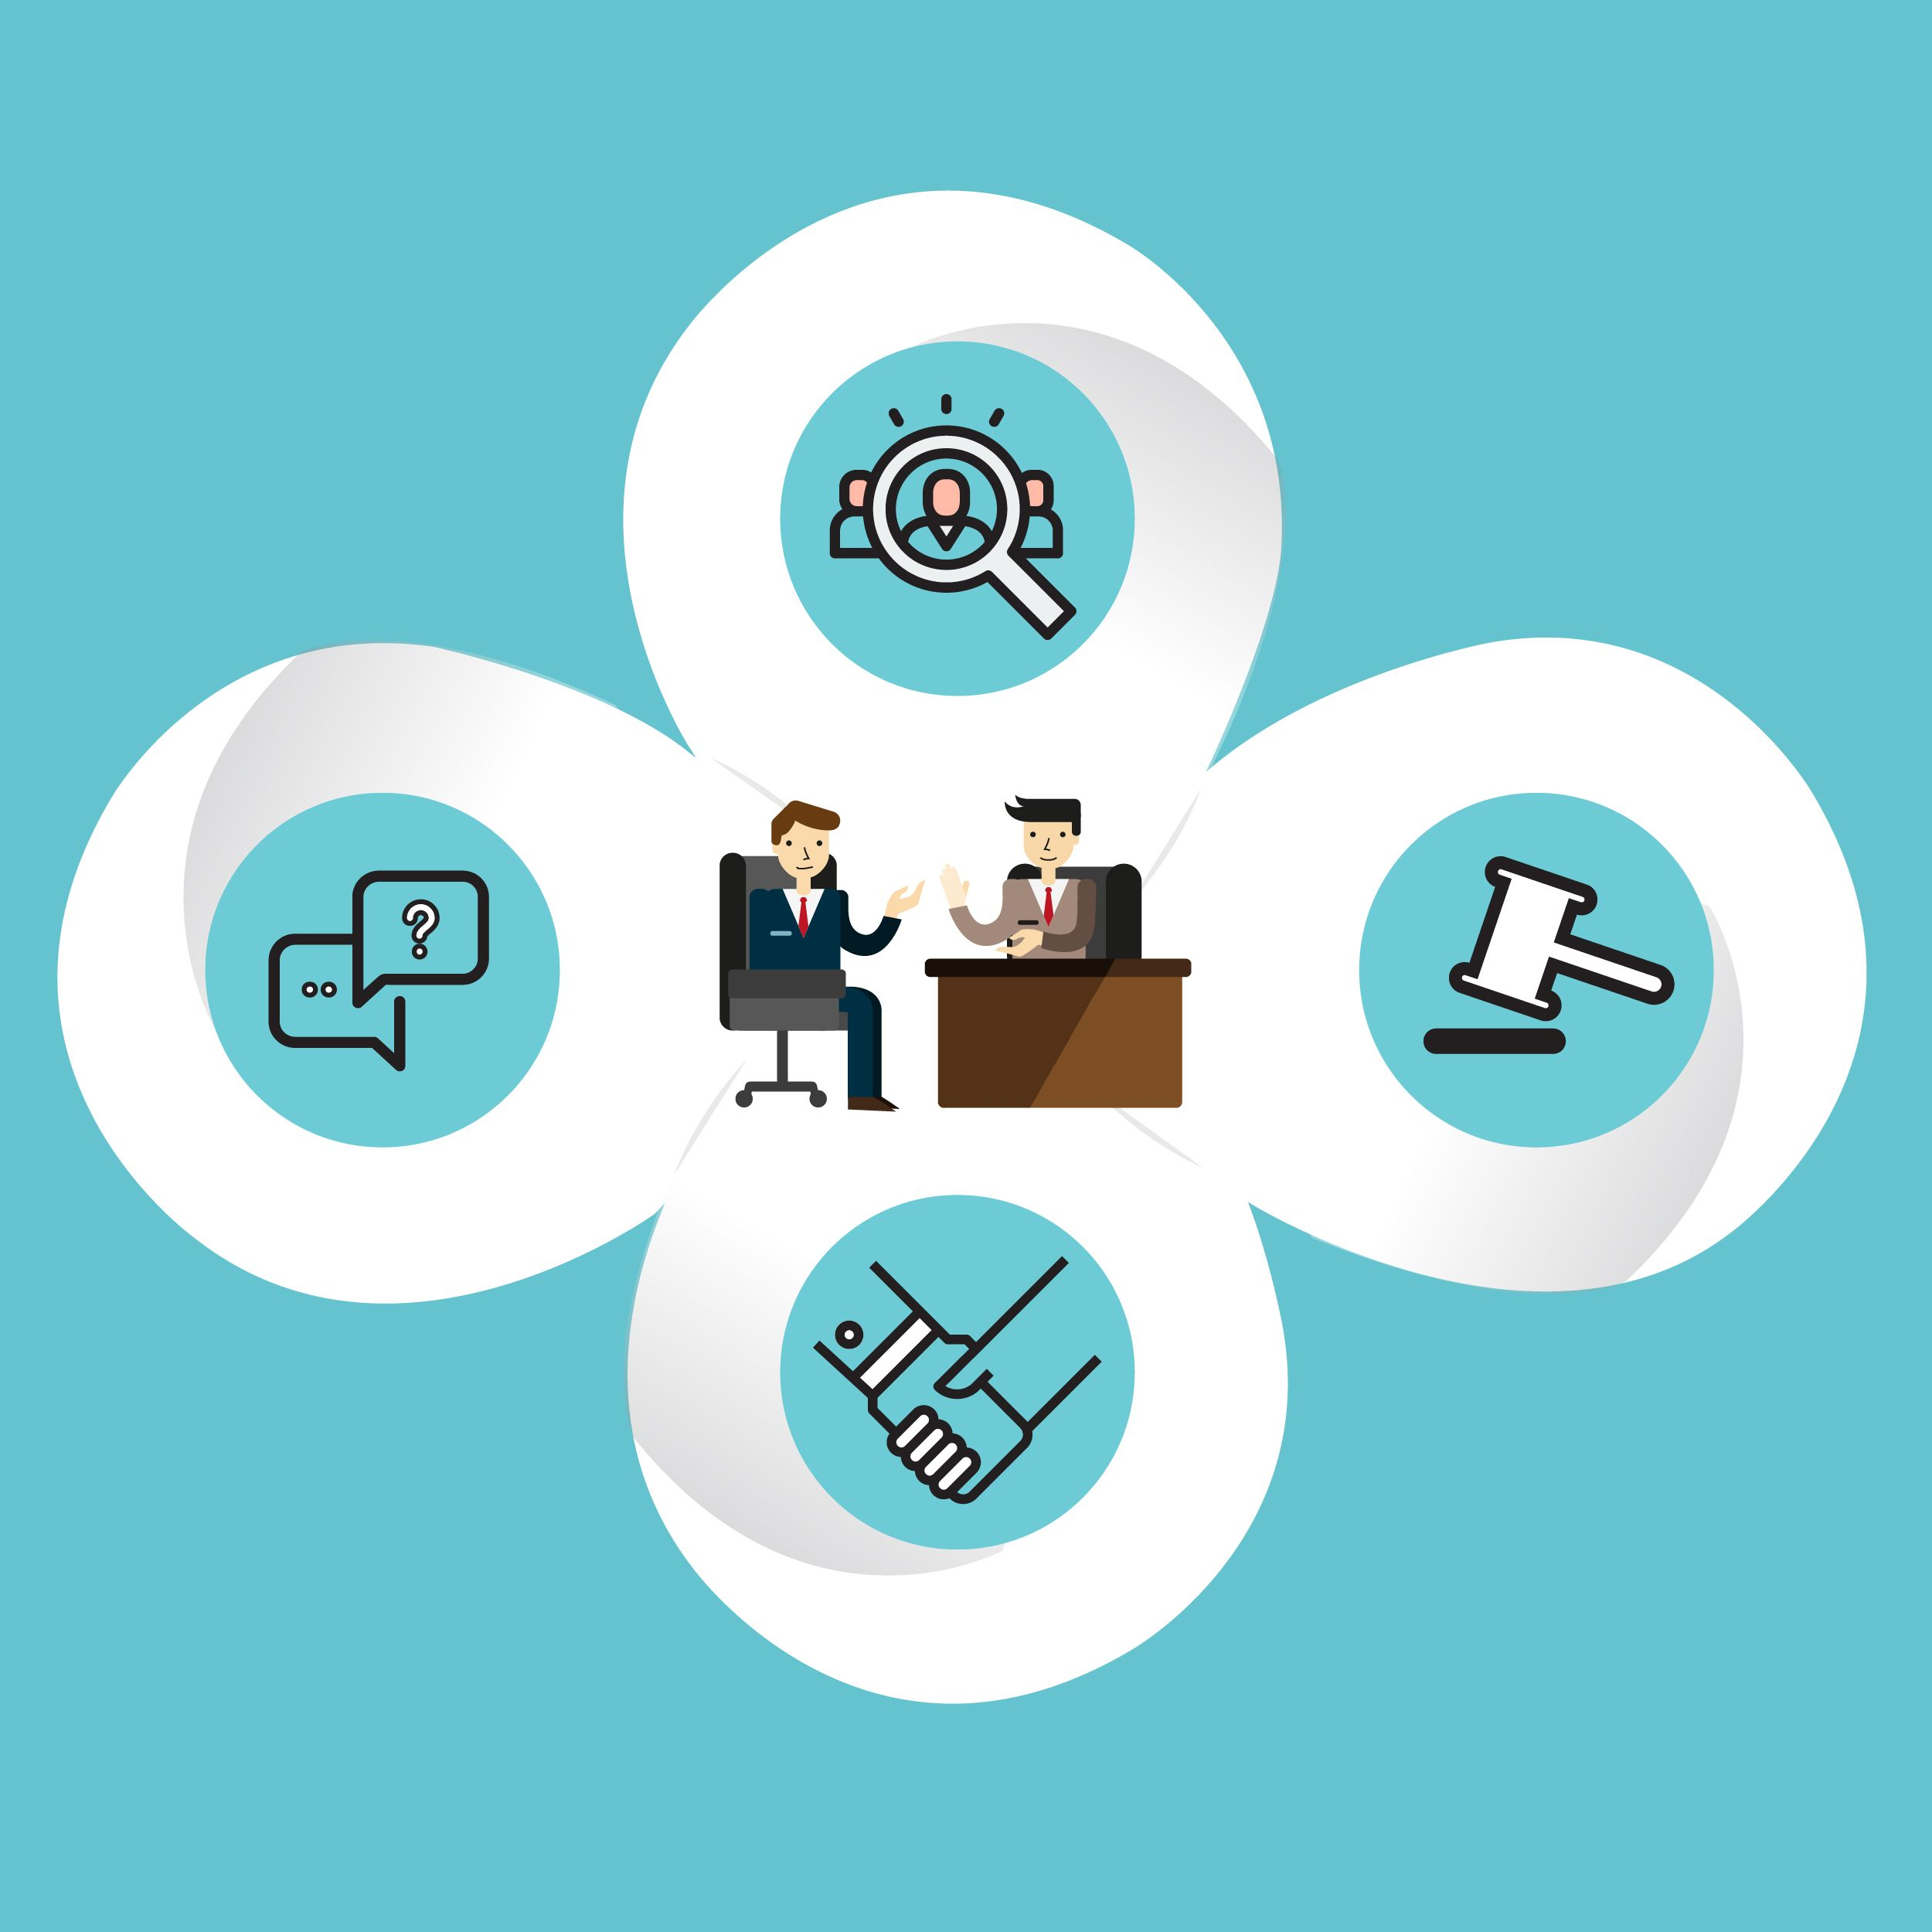 Benefits Of Having HR Professionals In Your Organization